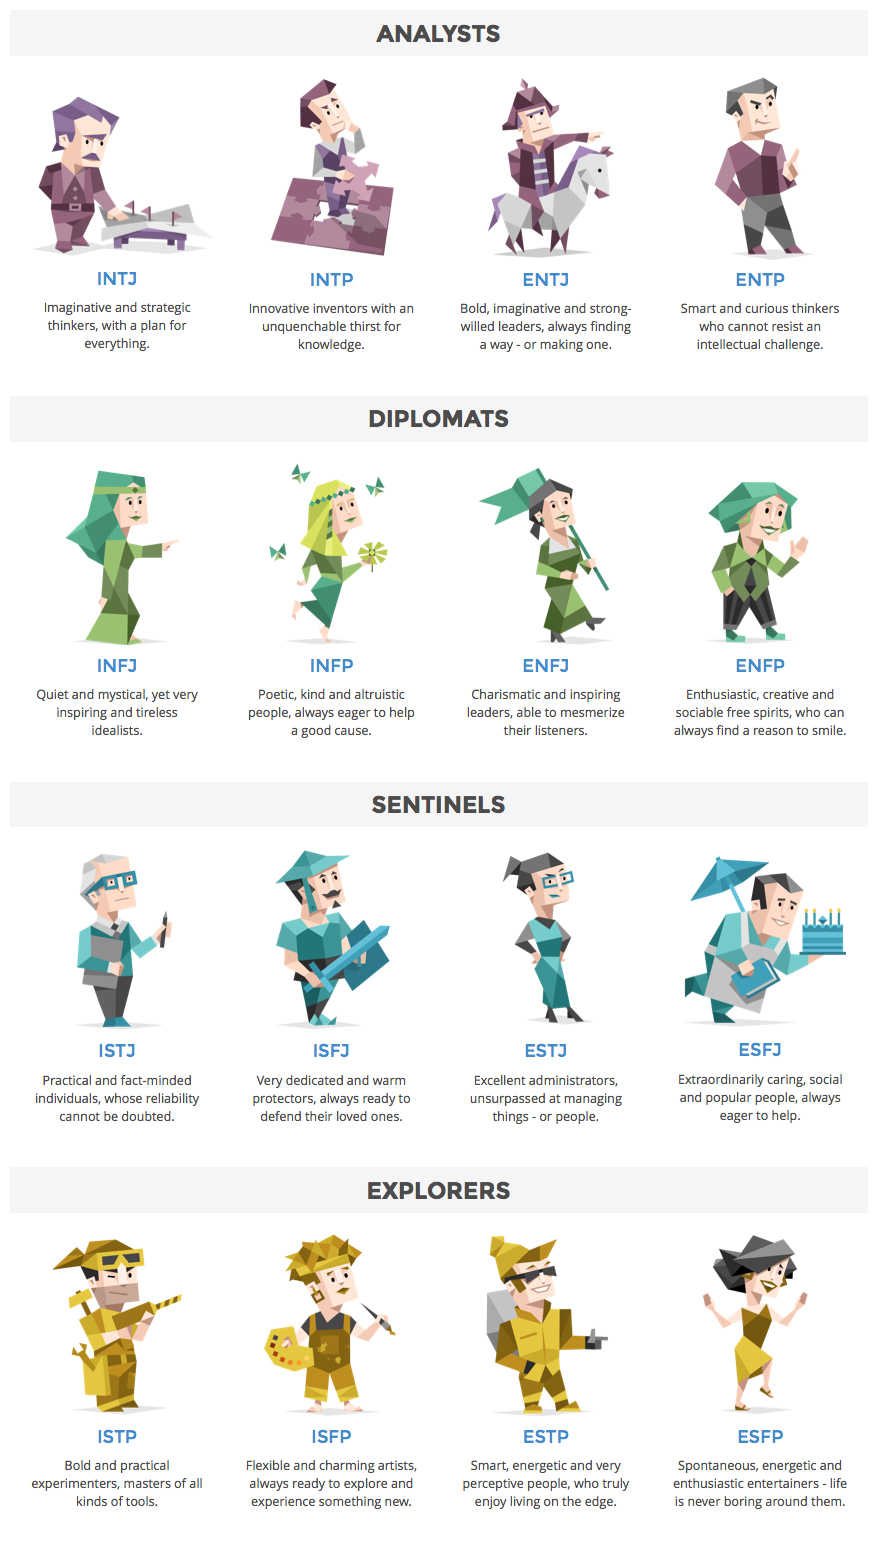 Which Position Suits You Best According To MBTI Personality Types?